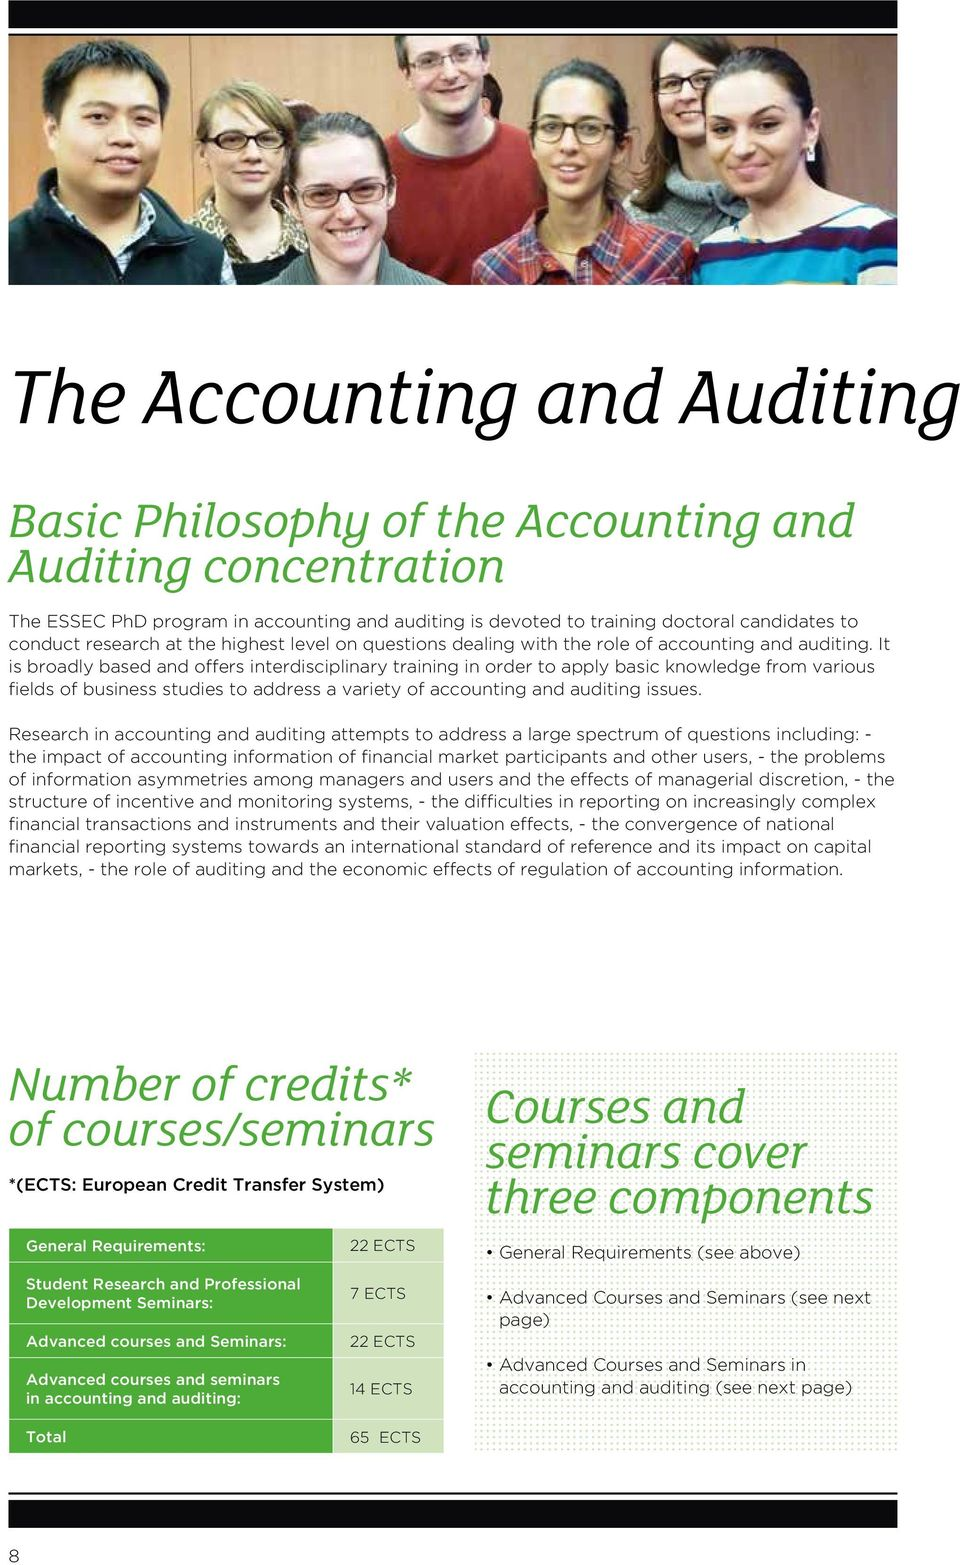 It is broadly based and offers interdisciplinary training in order to apply basic knowledge from various fields of business studies to address a variety of accounting and auditing issues.